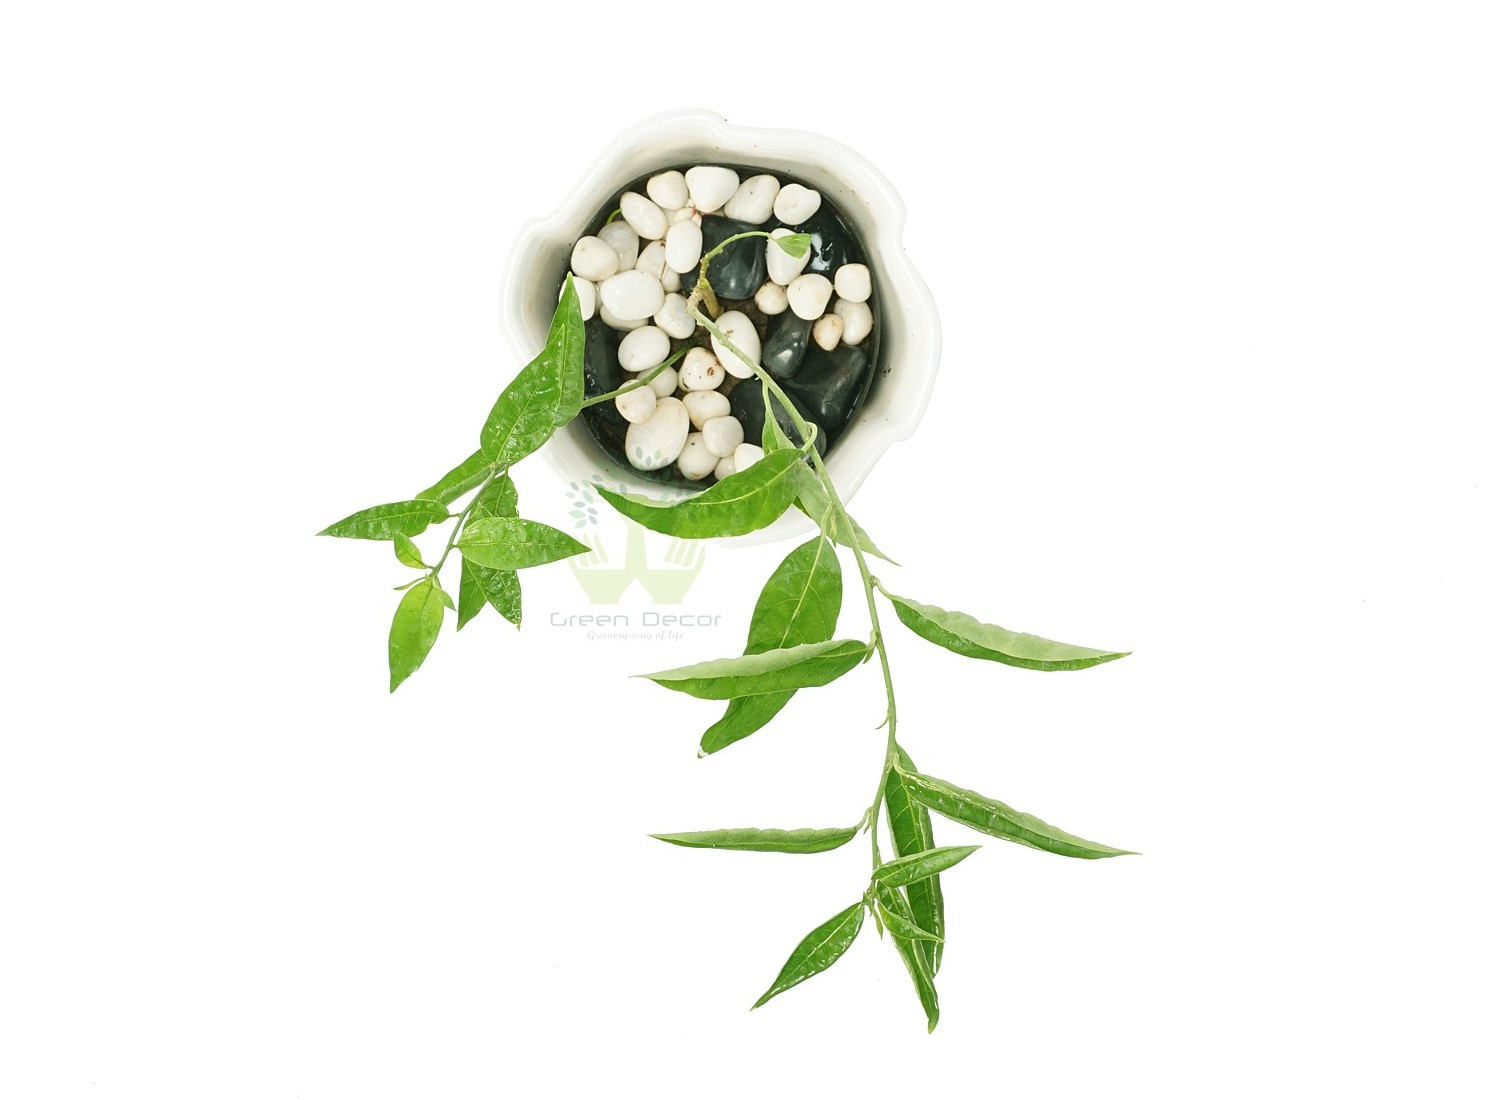 Buy Raat ki Rani Plants Top View , White Pots and seeds in Delhi NCR by the best online nursery shop Greendecor.